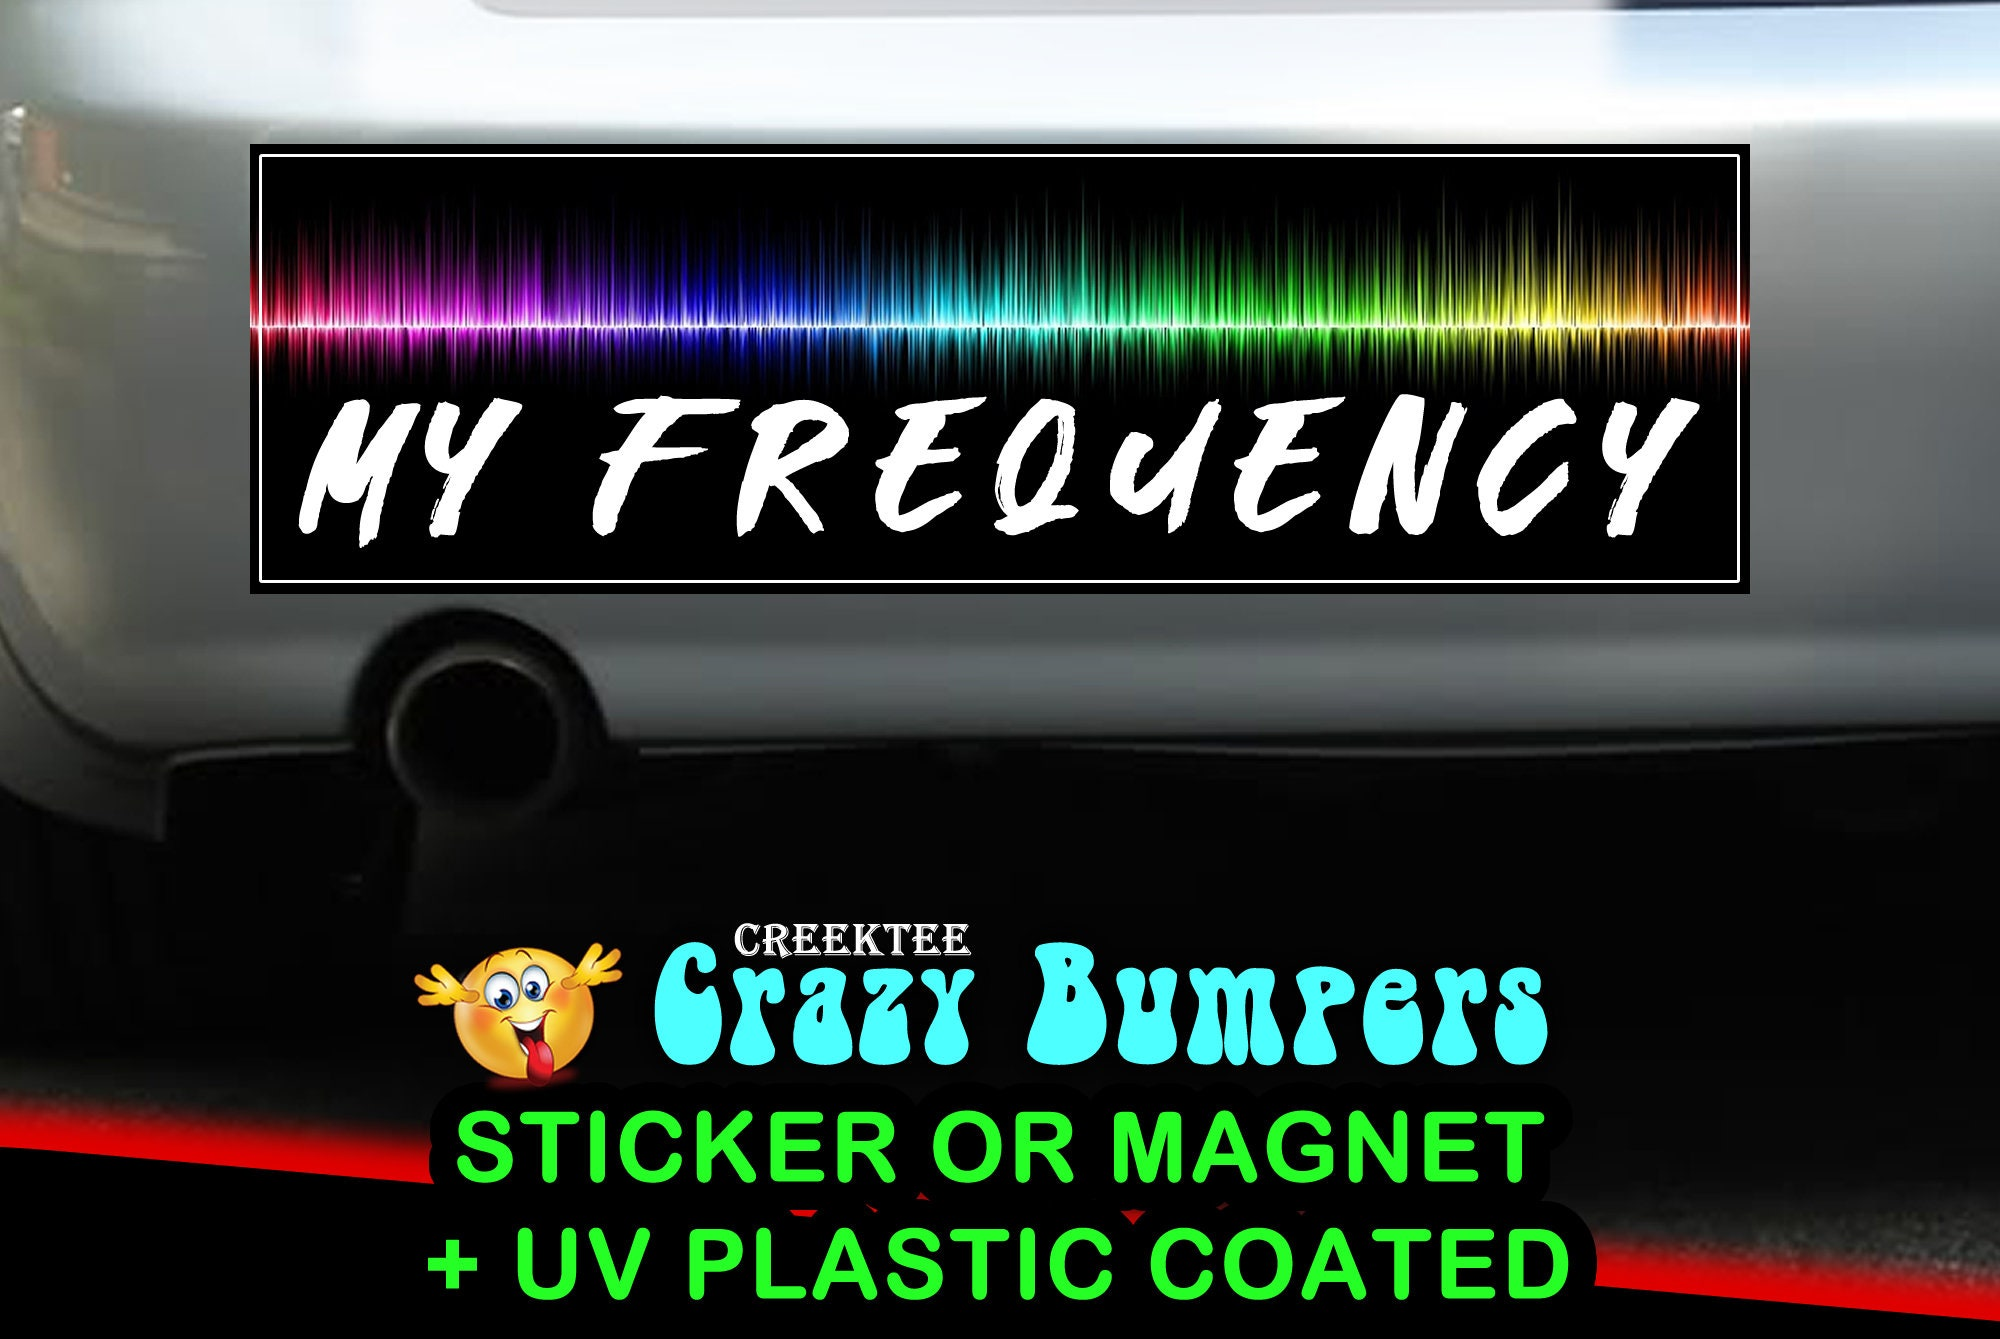 CAD$9.74 - My Frequency 10 x 3 Bumper Sticker or Magnetic Bumper Sticker Available